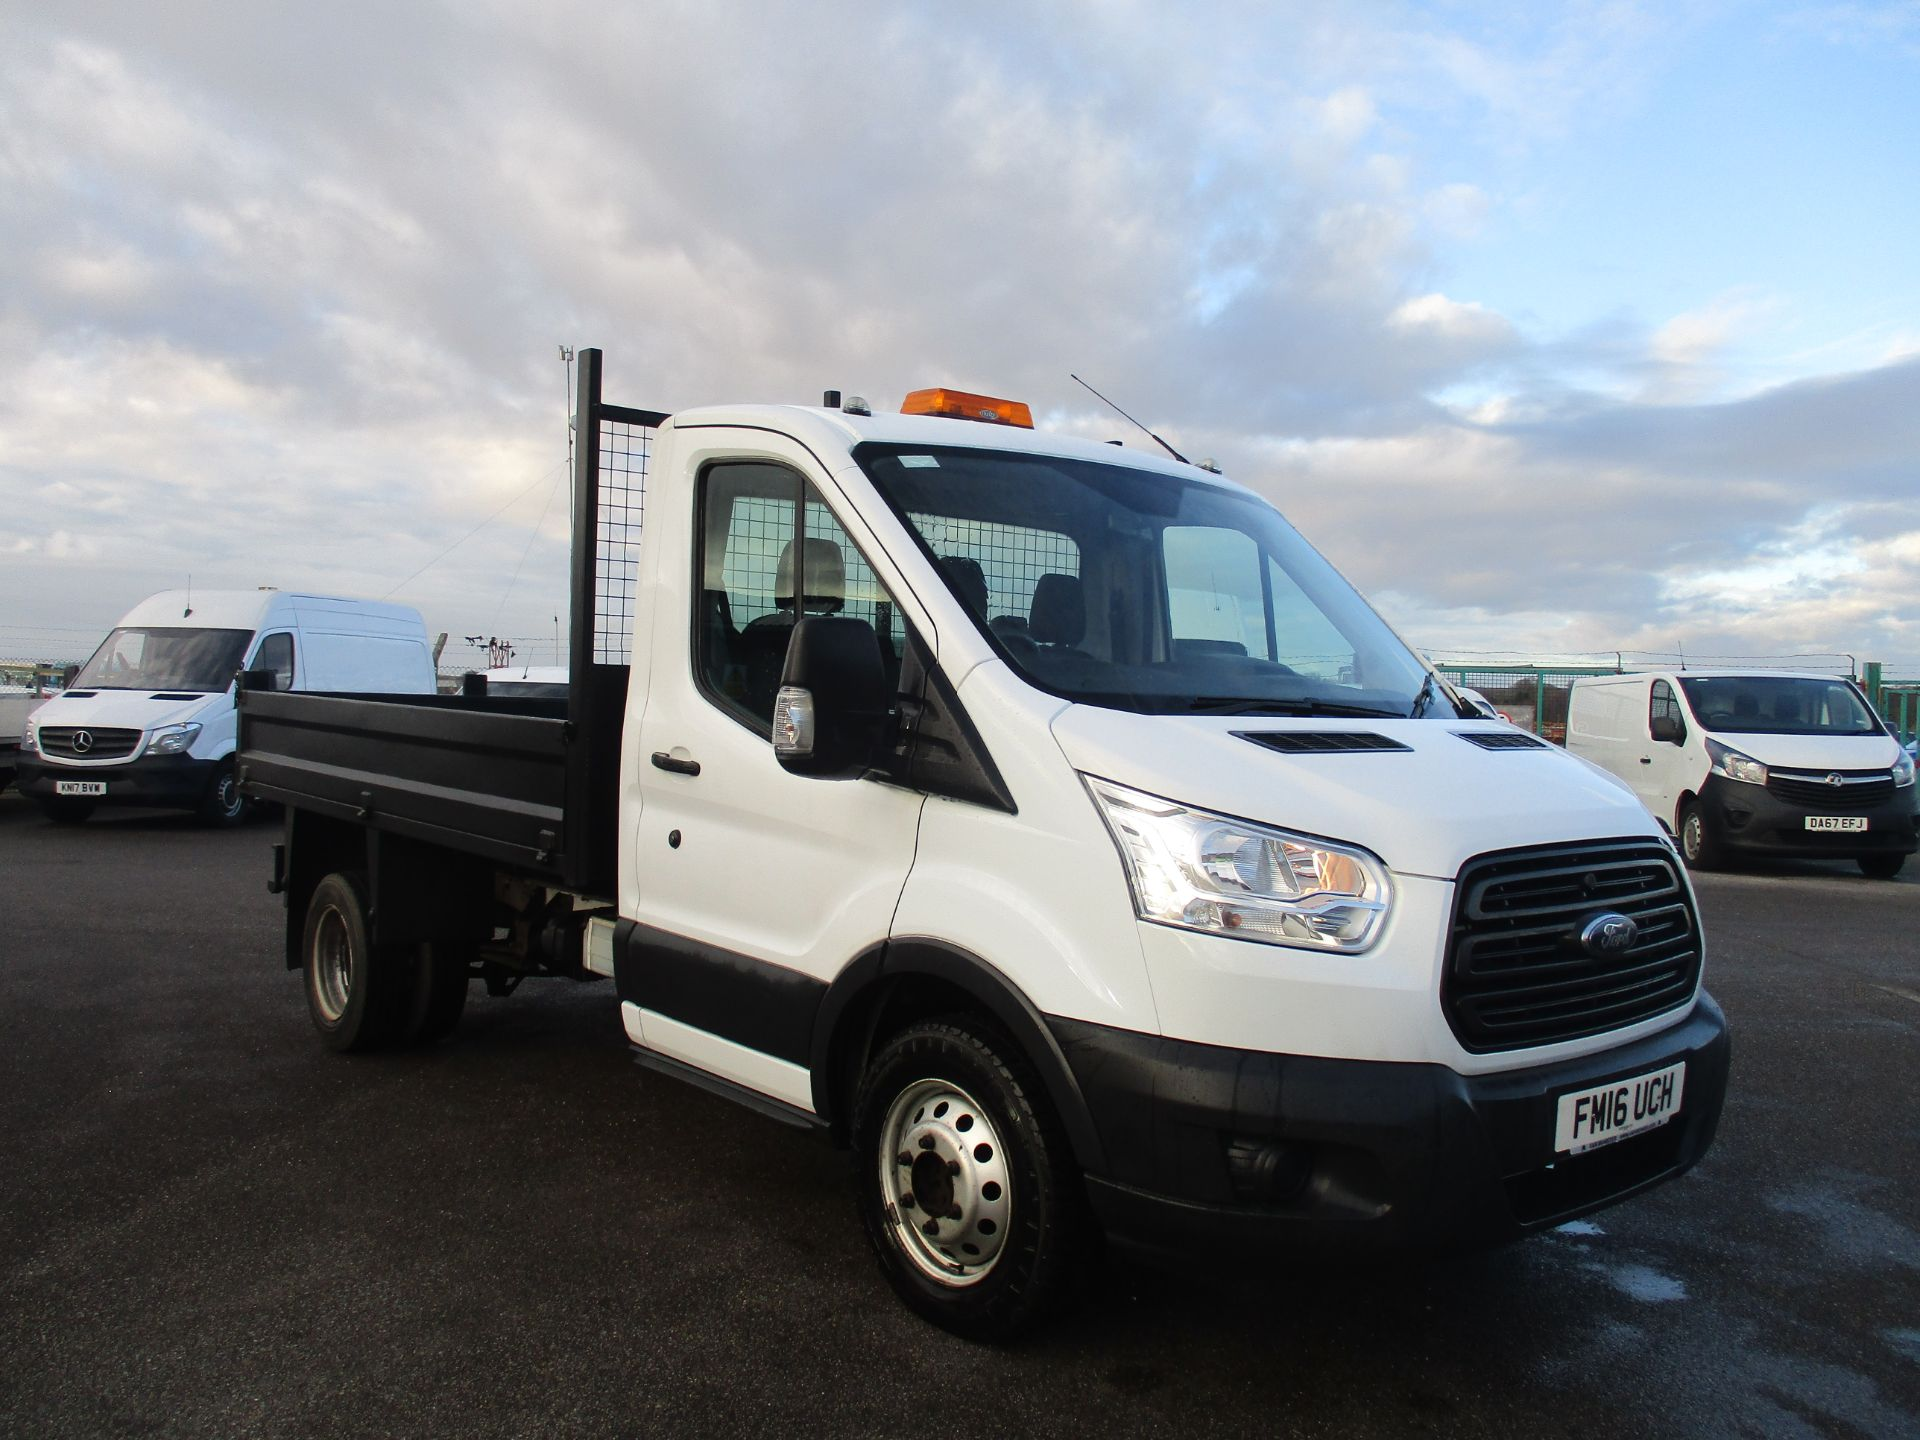 2016 Ford Transit 350 L2 SINGLE CAB TIPPER 125PS EURO 5 (FM16UCH)